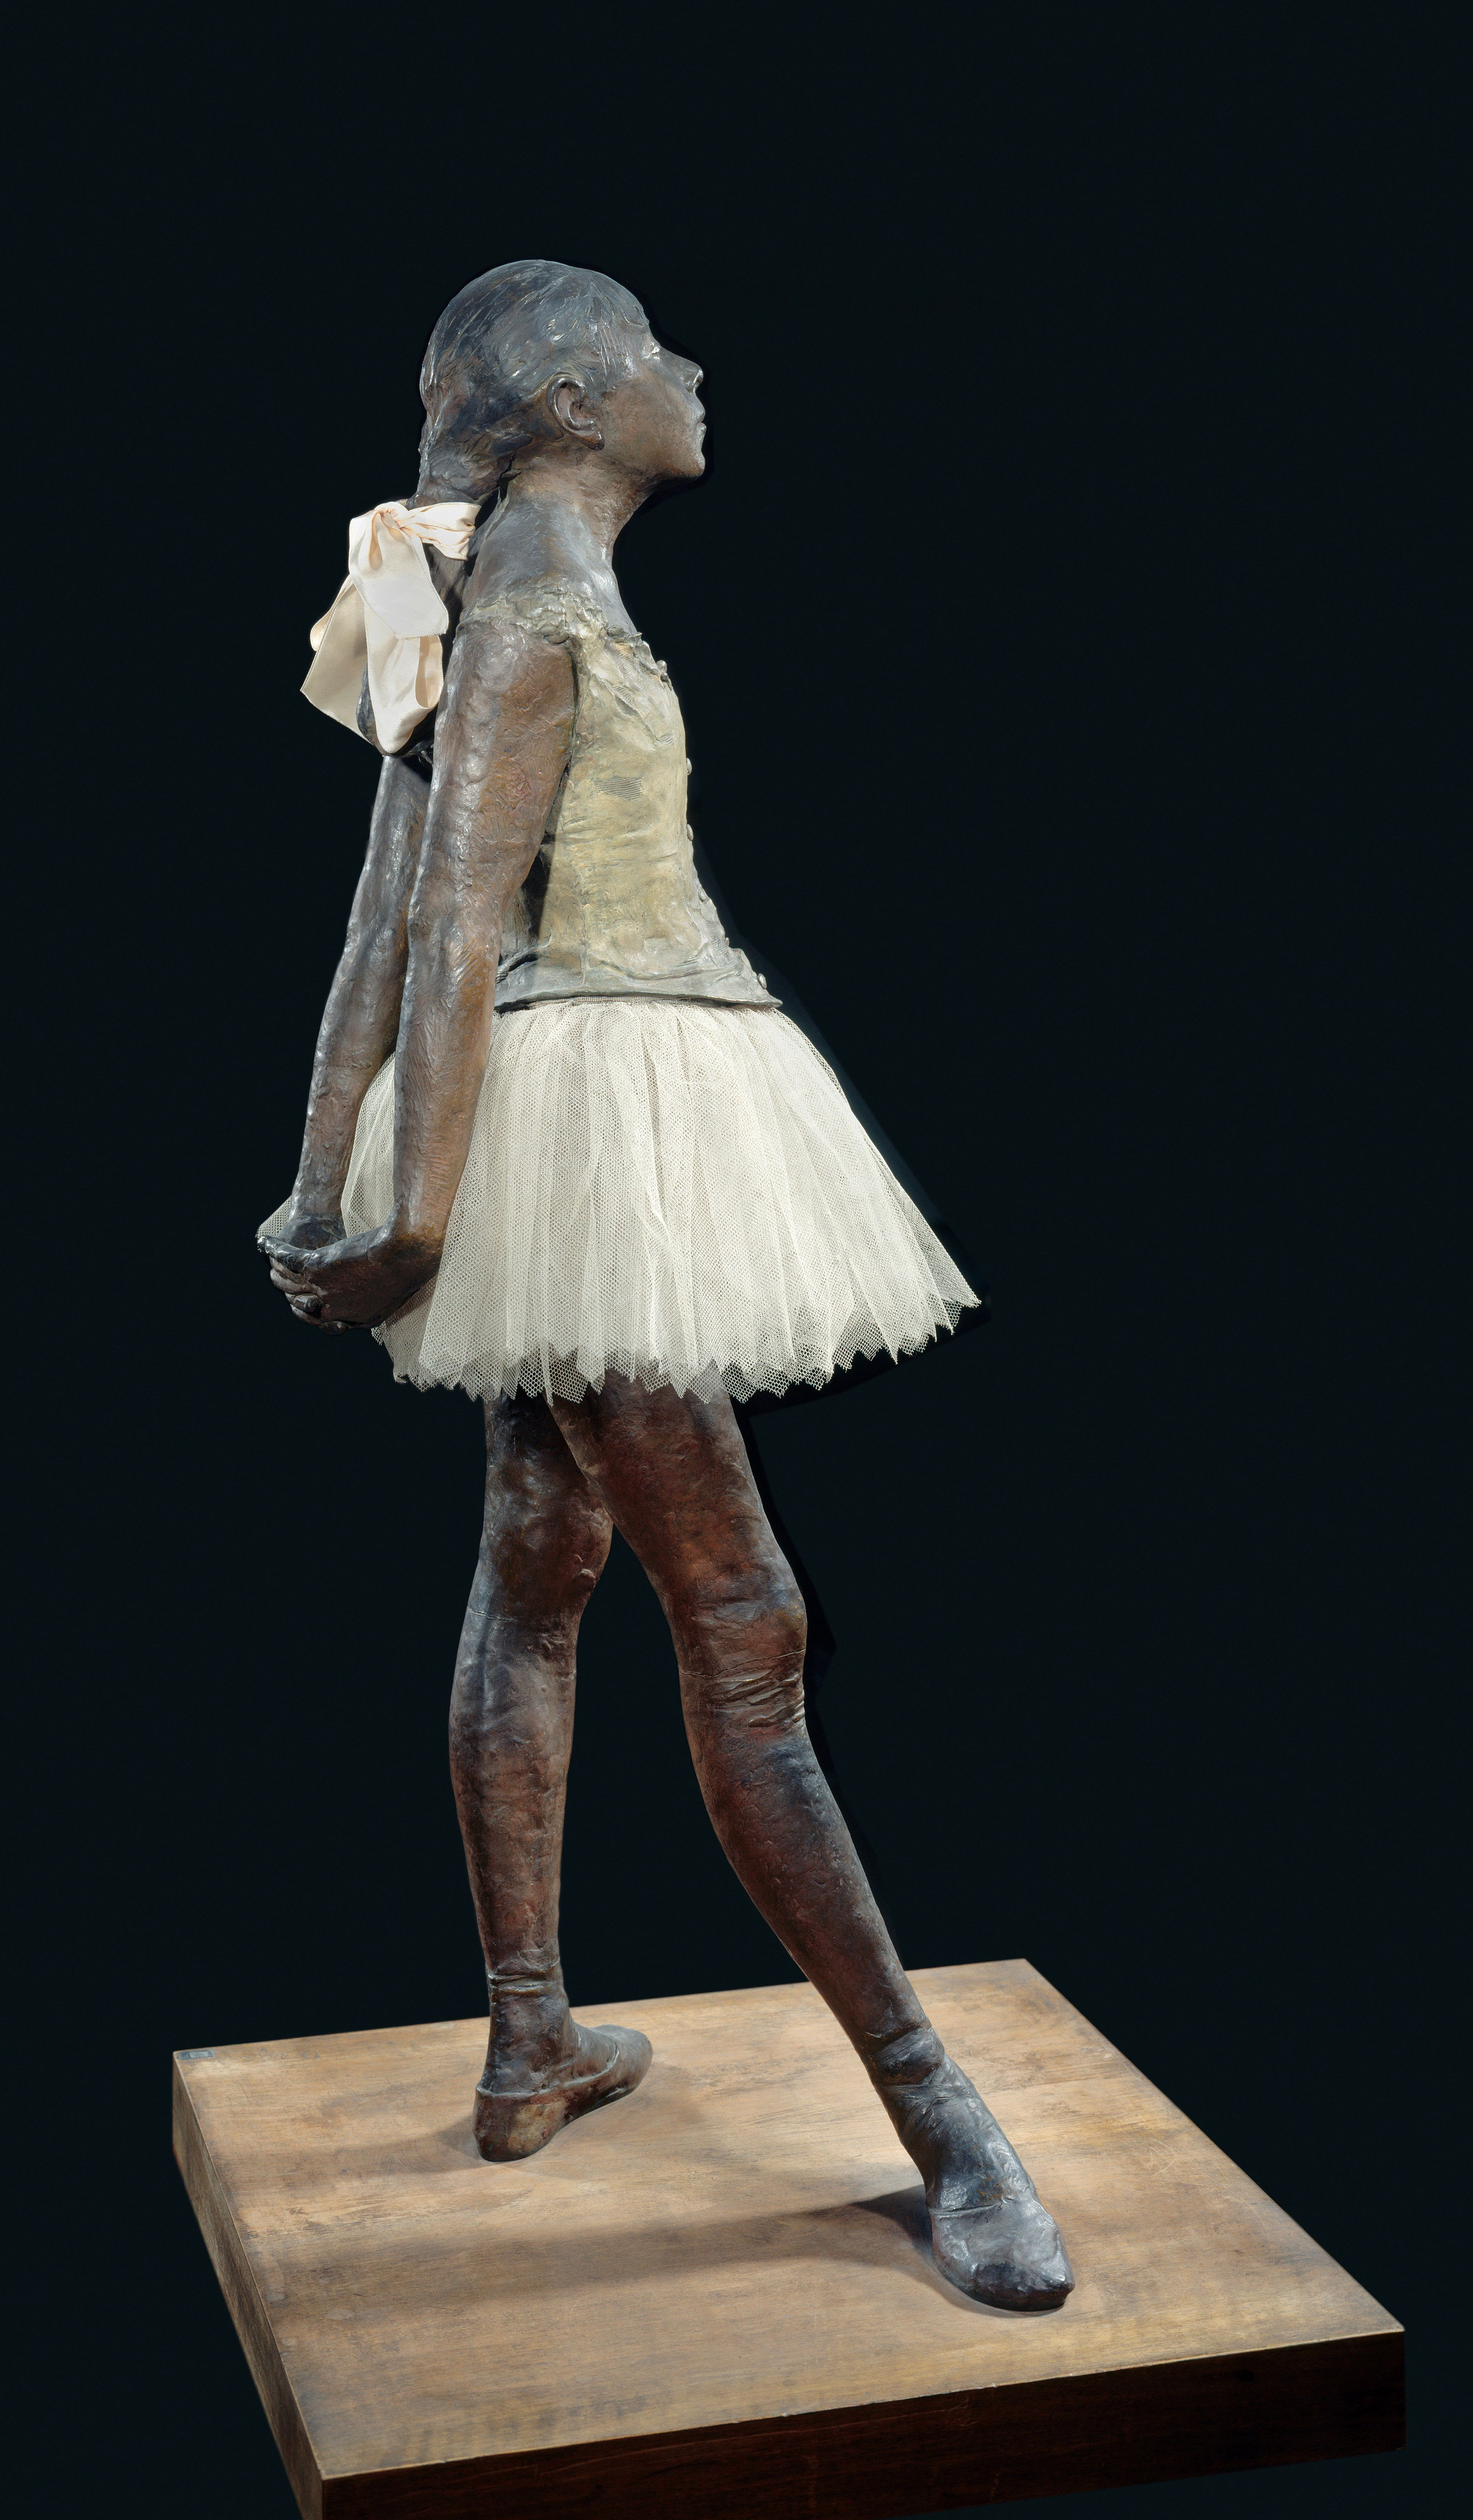 Edgar Degas (1834-1917),   Small Dancer Aged 14. 1881. Bronze, tulle, pink satin ribbon, wooden base, 0.98 x 0.35 x 0.24 m. Paris, musee d'Orsay. (Photo by: Christophel Fine Art/UIG via Getty Images)